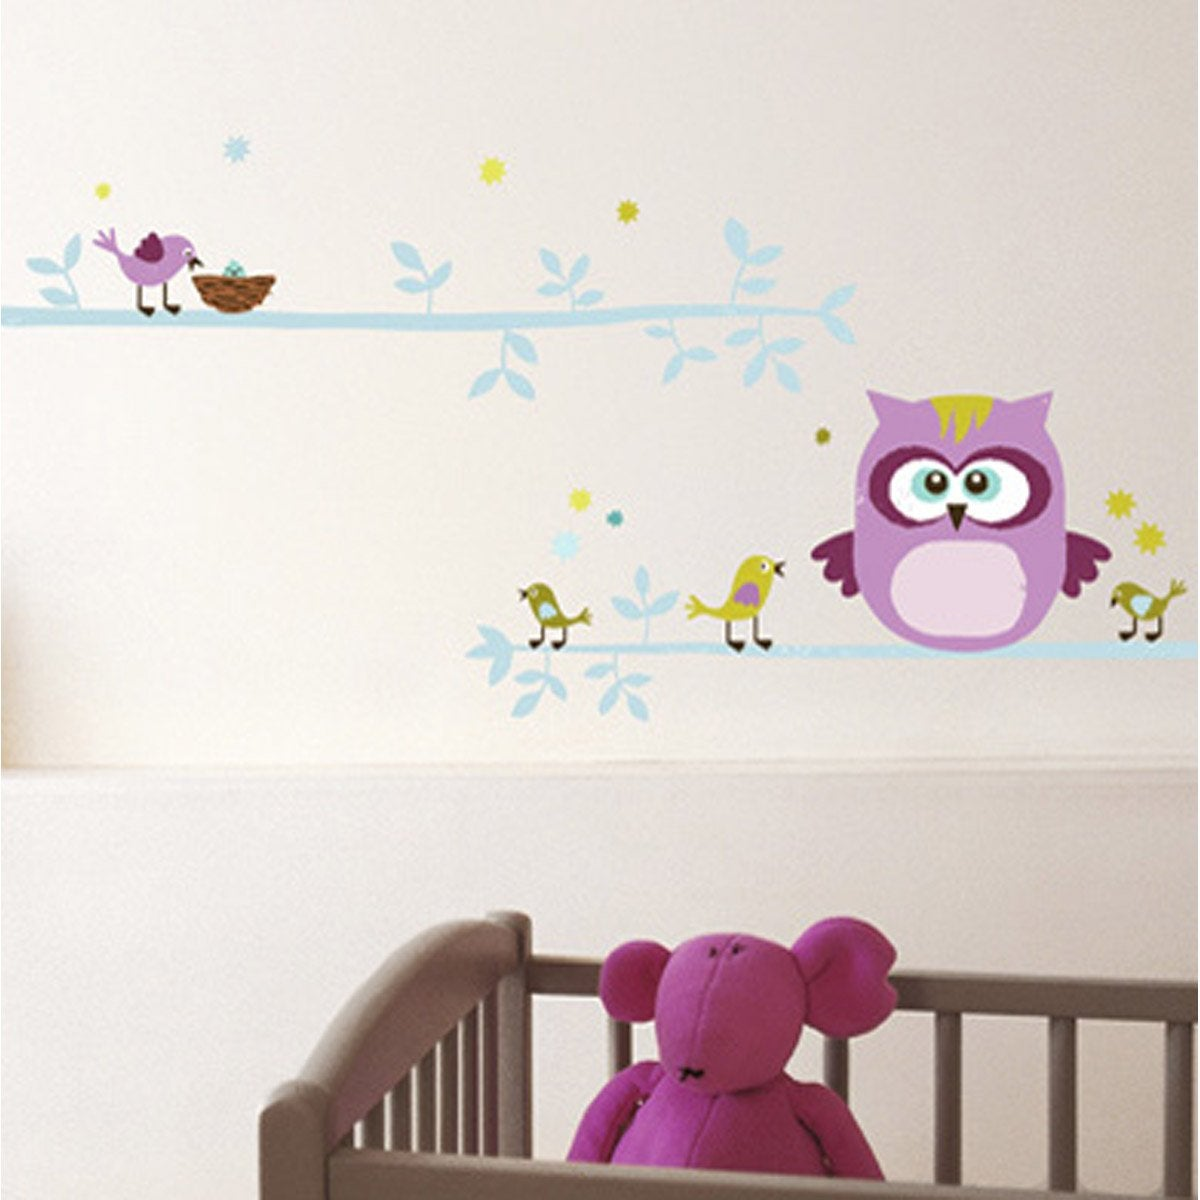 sticker hibou et cie 50 cm x 70 cm leroy merlin. Black Bedroom Furniture Sets. Home Design Ideas